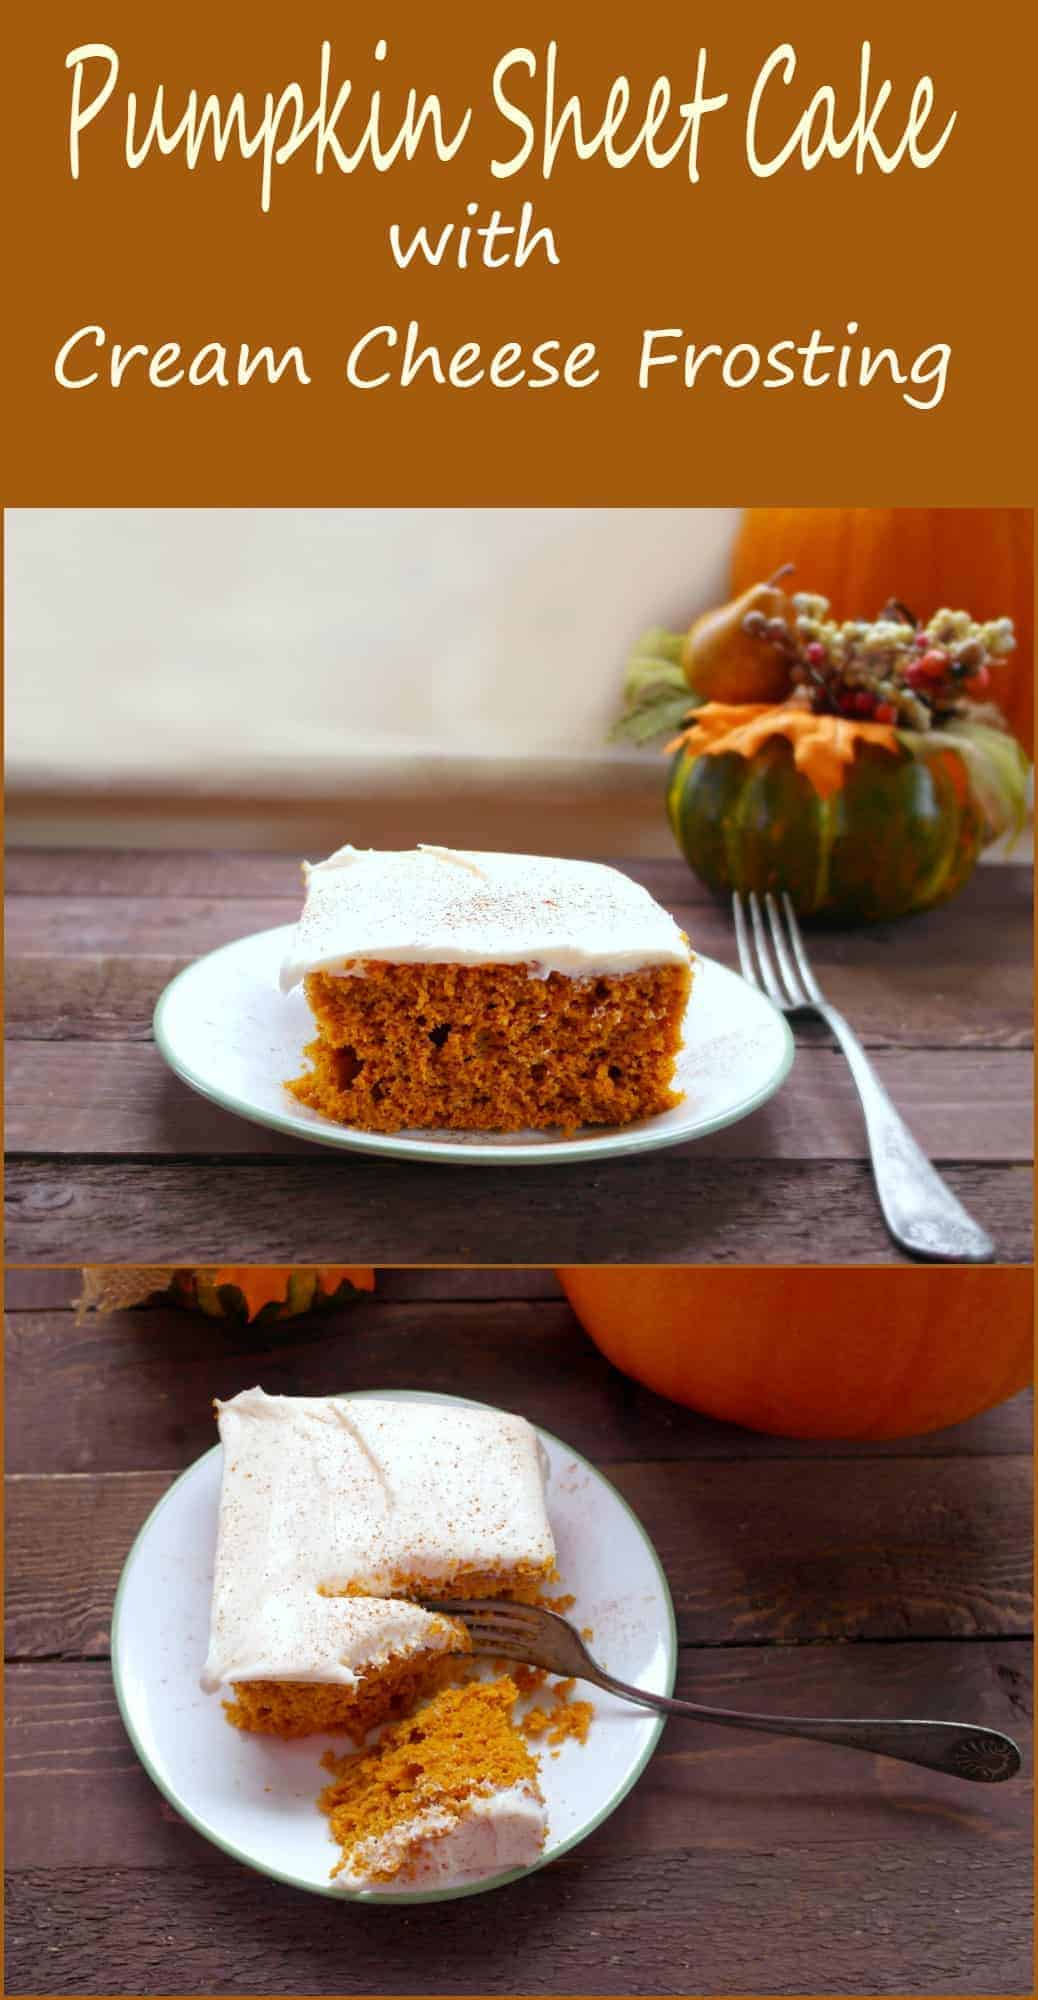 This pumpkin cake recipe with cream cheese frosting is going to fast become a favorite for you entire family during the pumpkin rich fall months. - Teaspoon Of Goodness